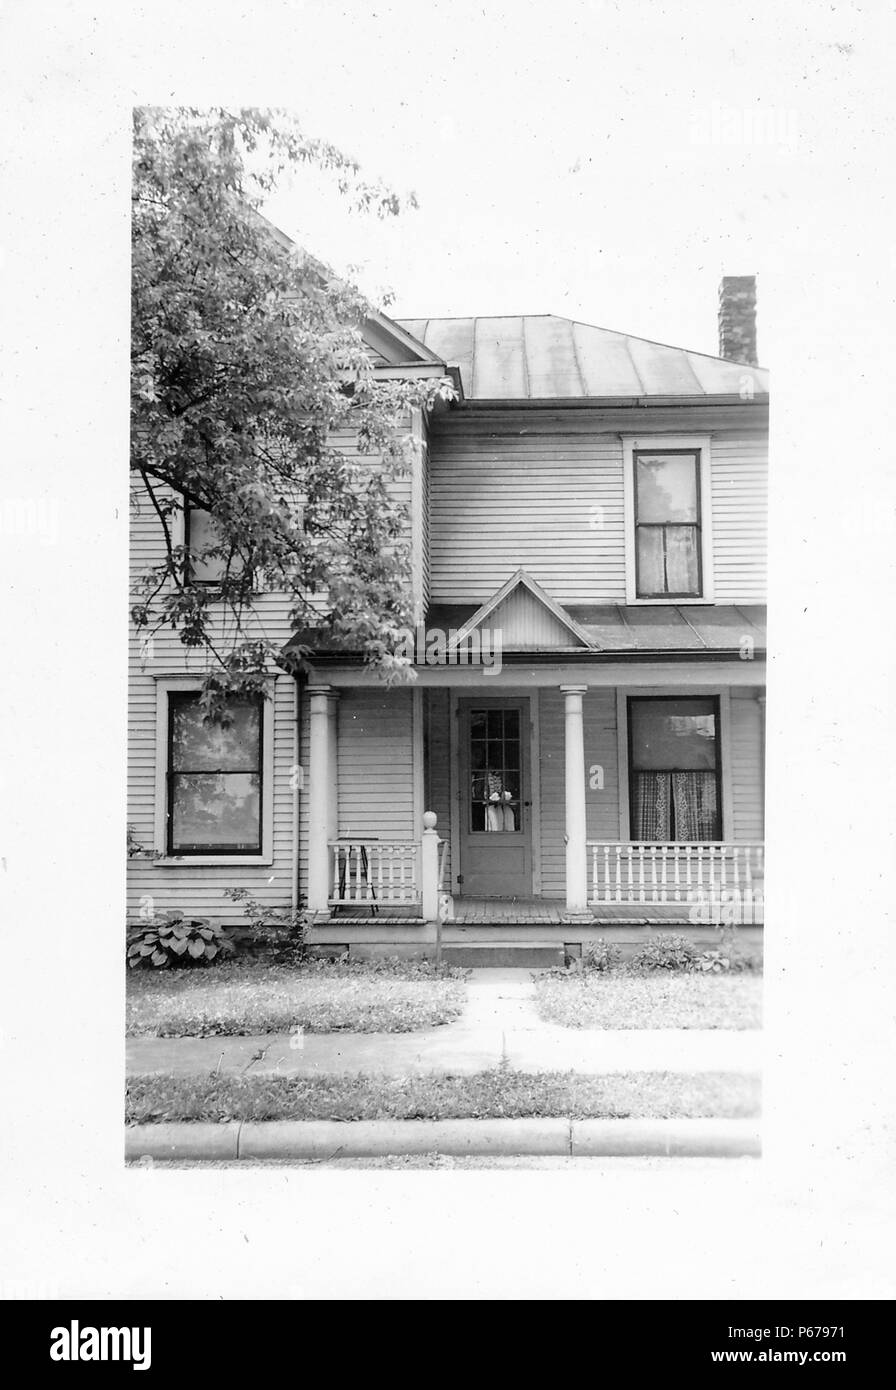 Black and white photograph, showing the front of a small, light-colored, wooden house, with a covered front porch, with Doric columns and a small gable over the entrance, likely photographed in Ohio in the decade following World War II, 1950. () - Stock Image